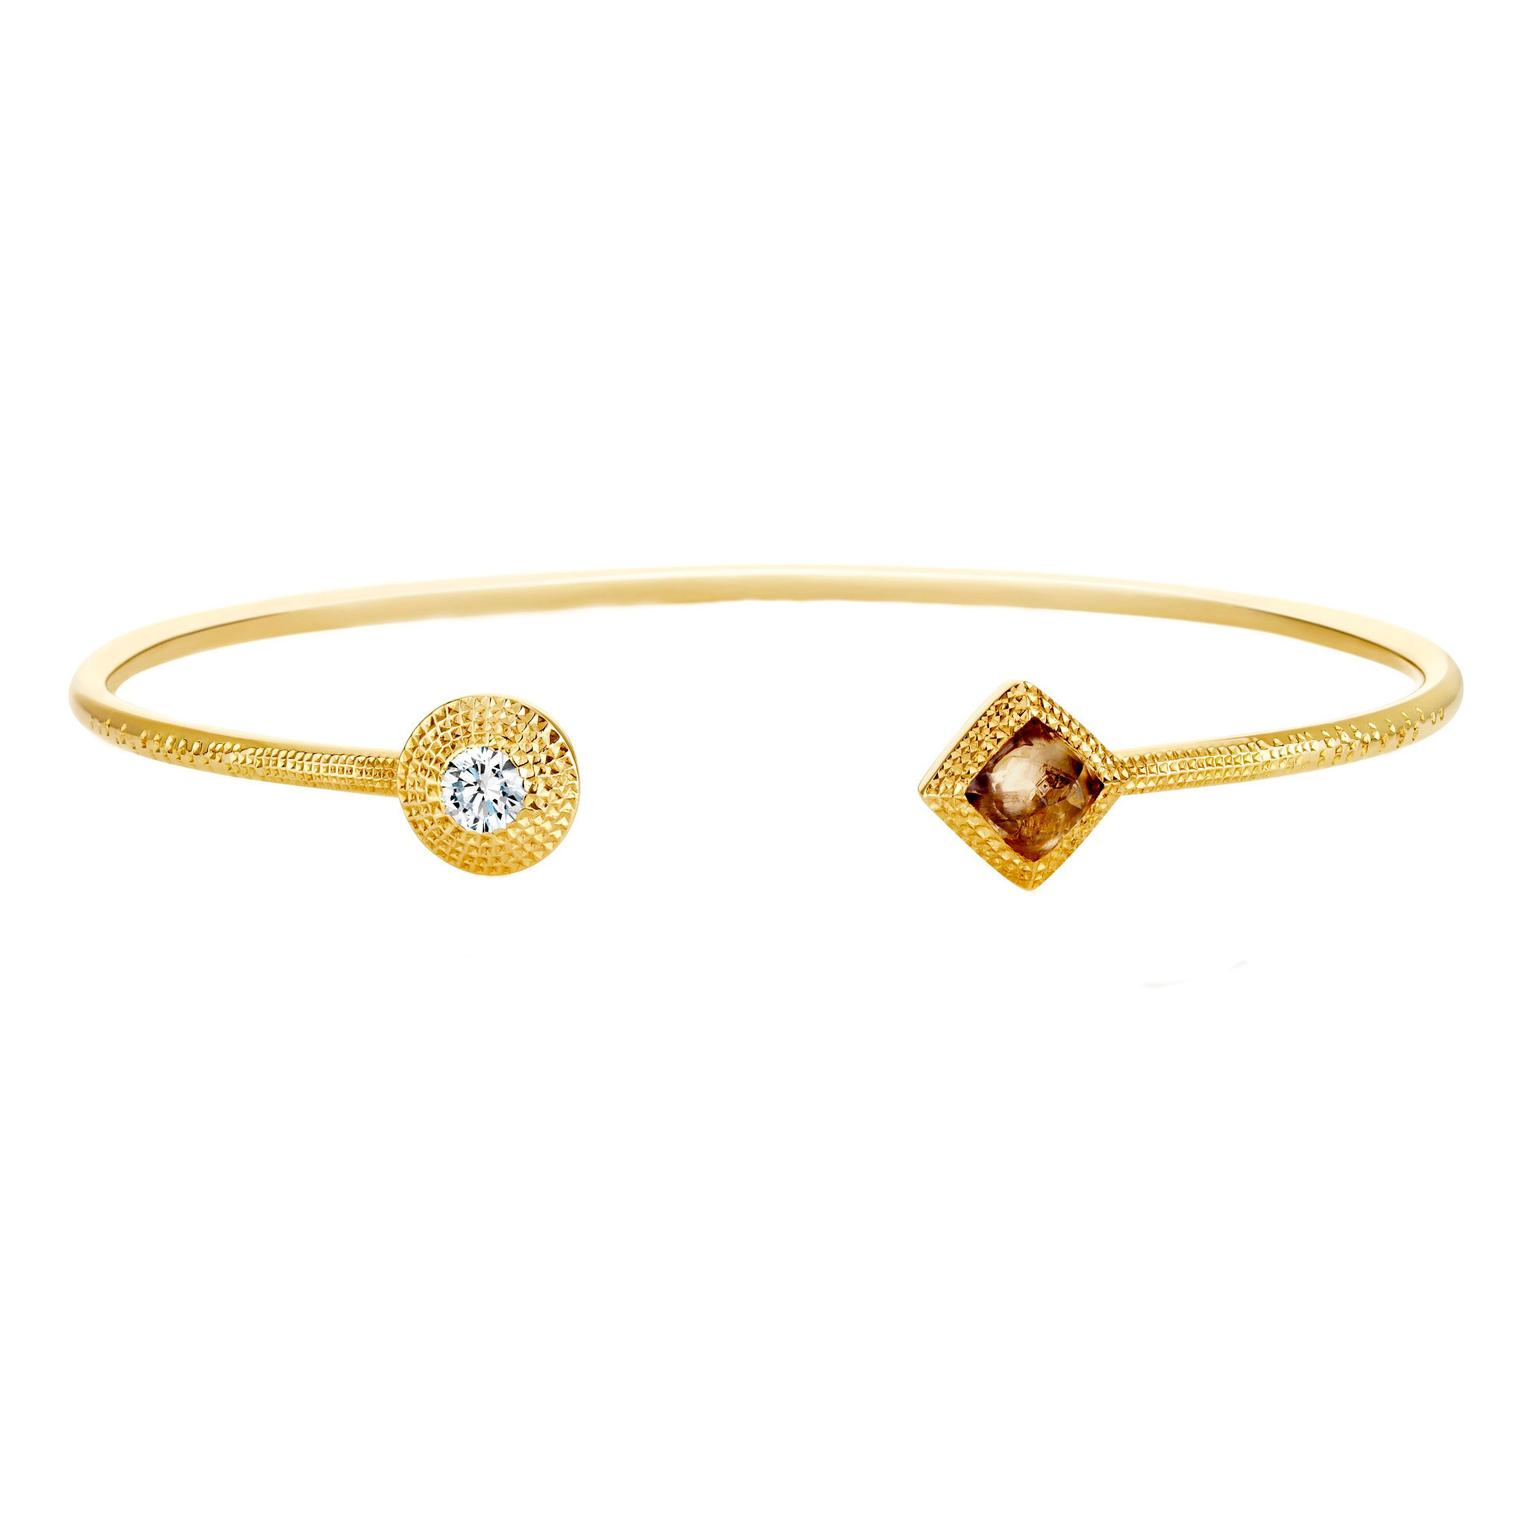 De Beers Talisman open bangle